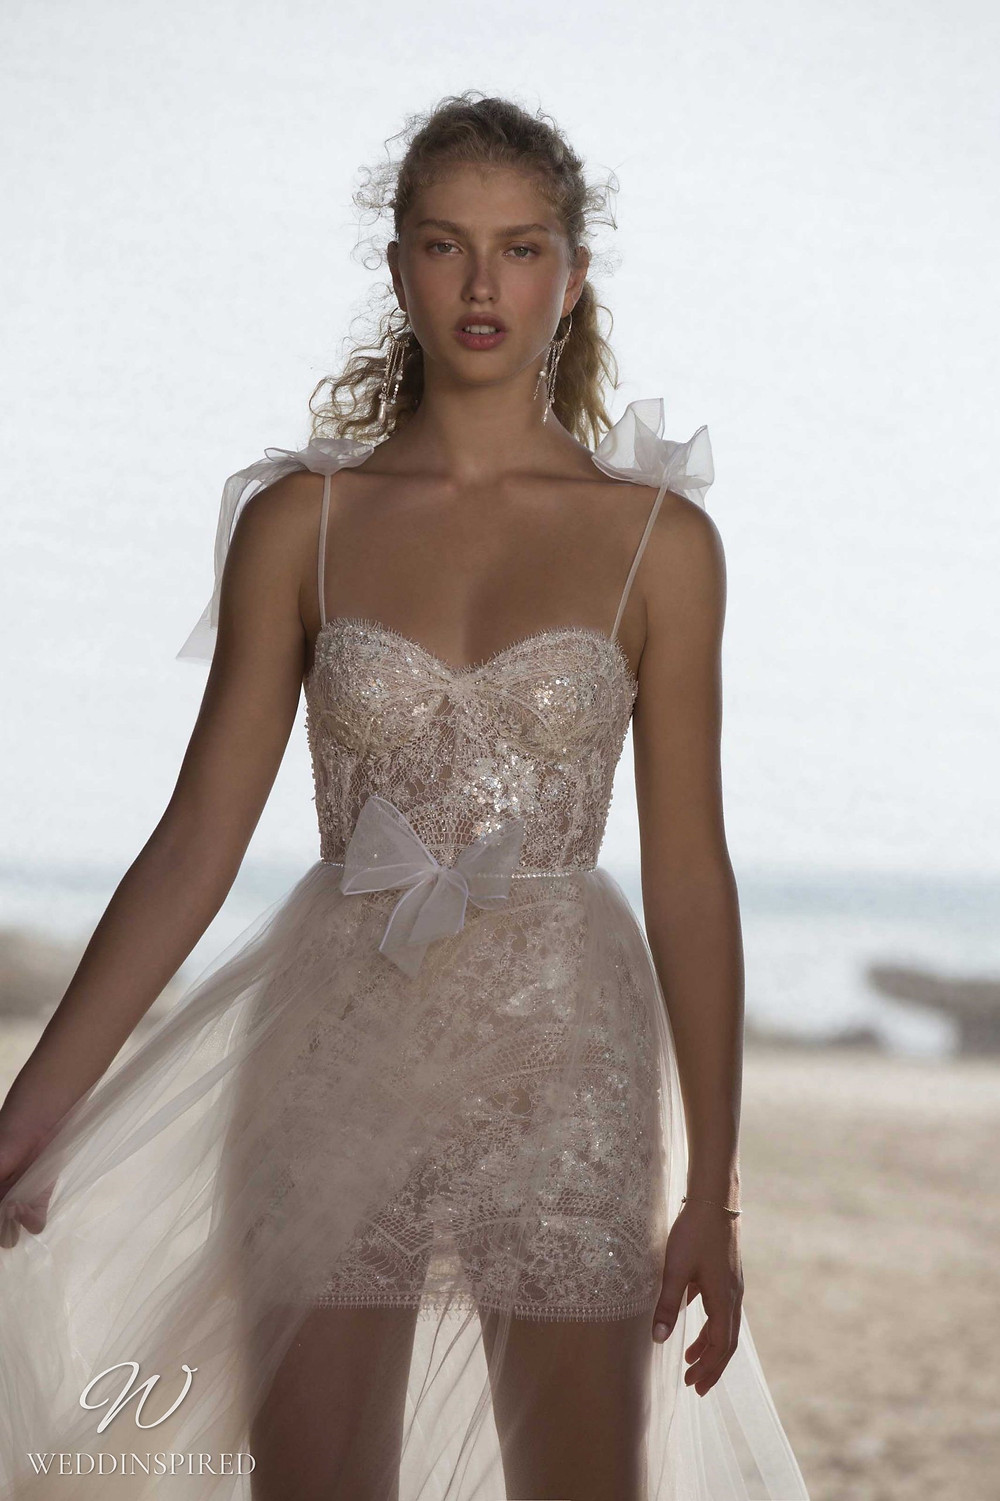 A Muse by Berta ivory tulle and lace short wedding dress with a detachable skirt and straps